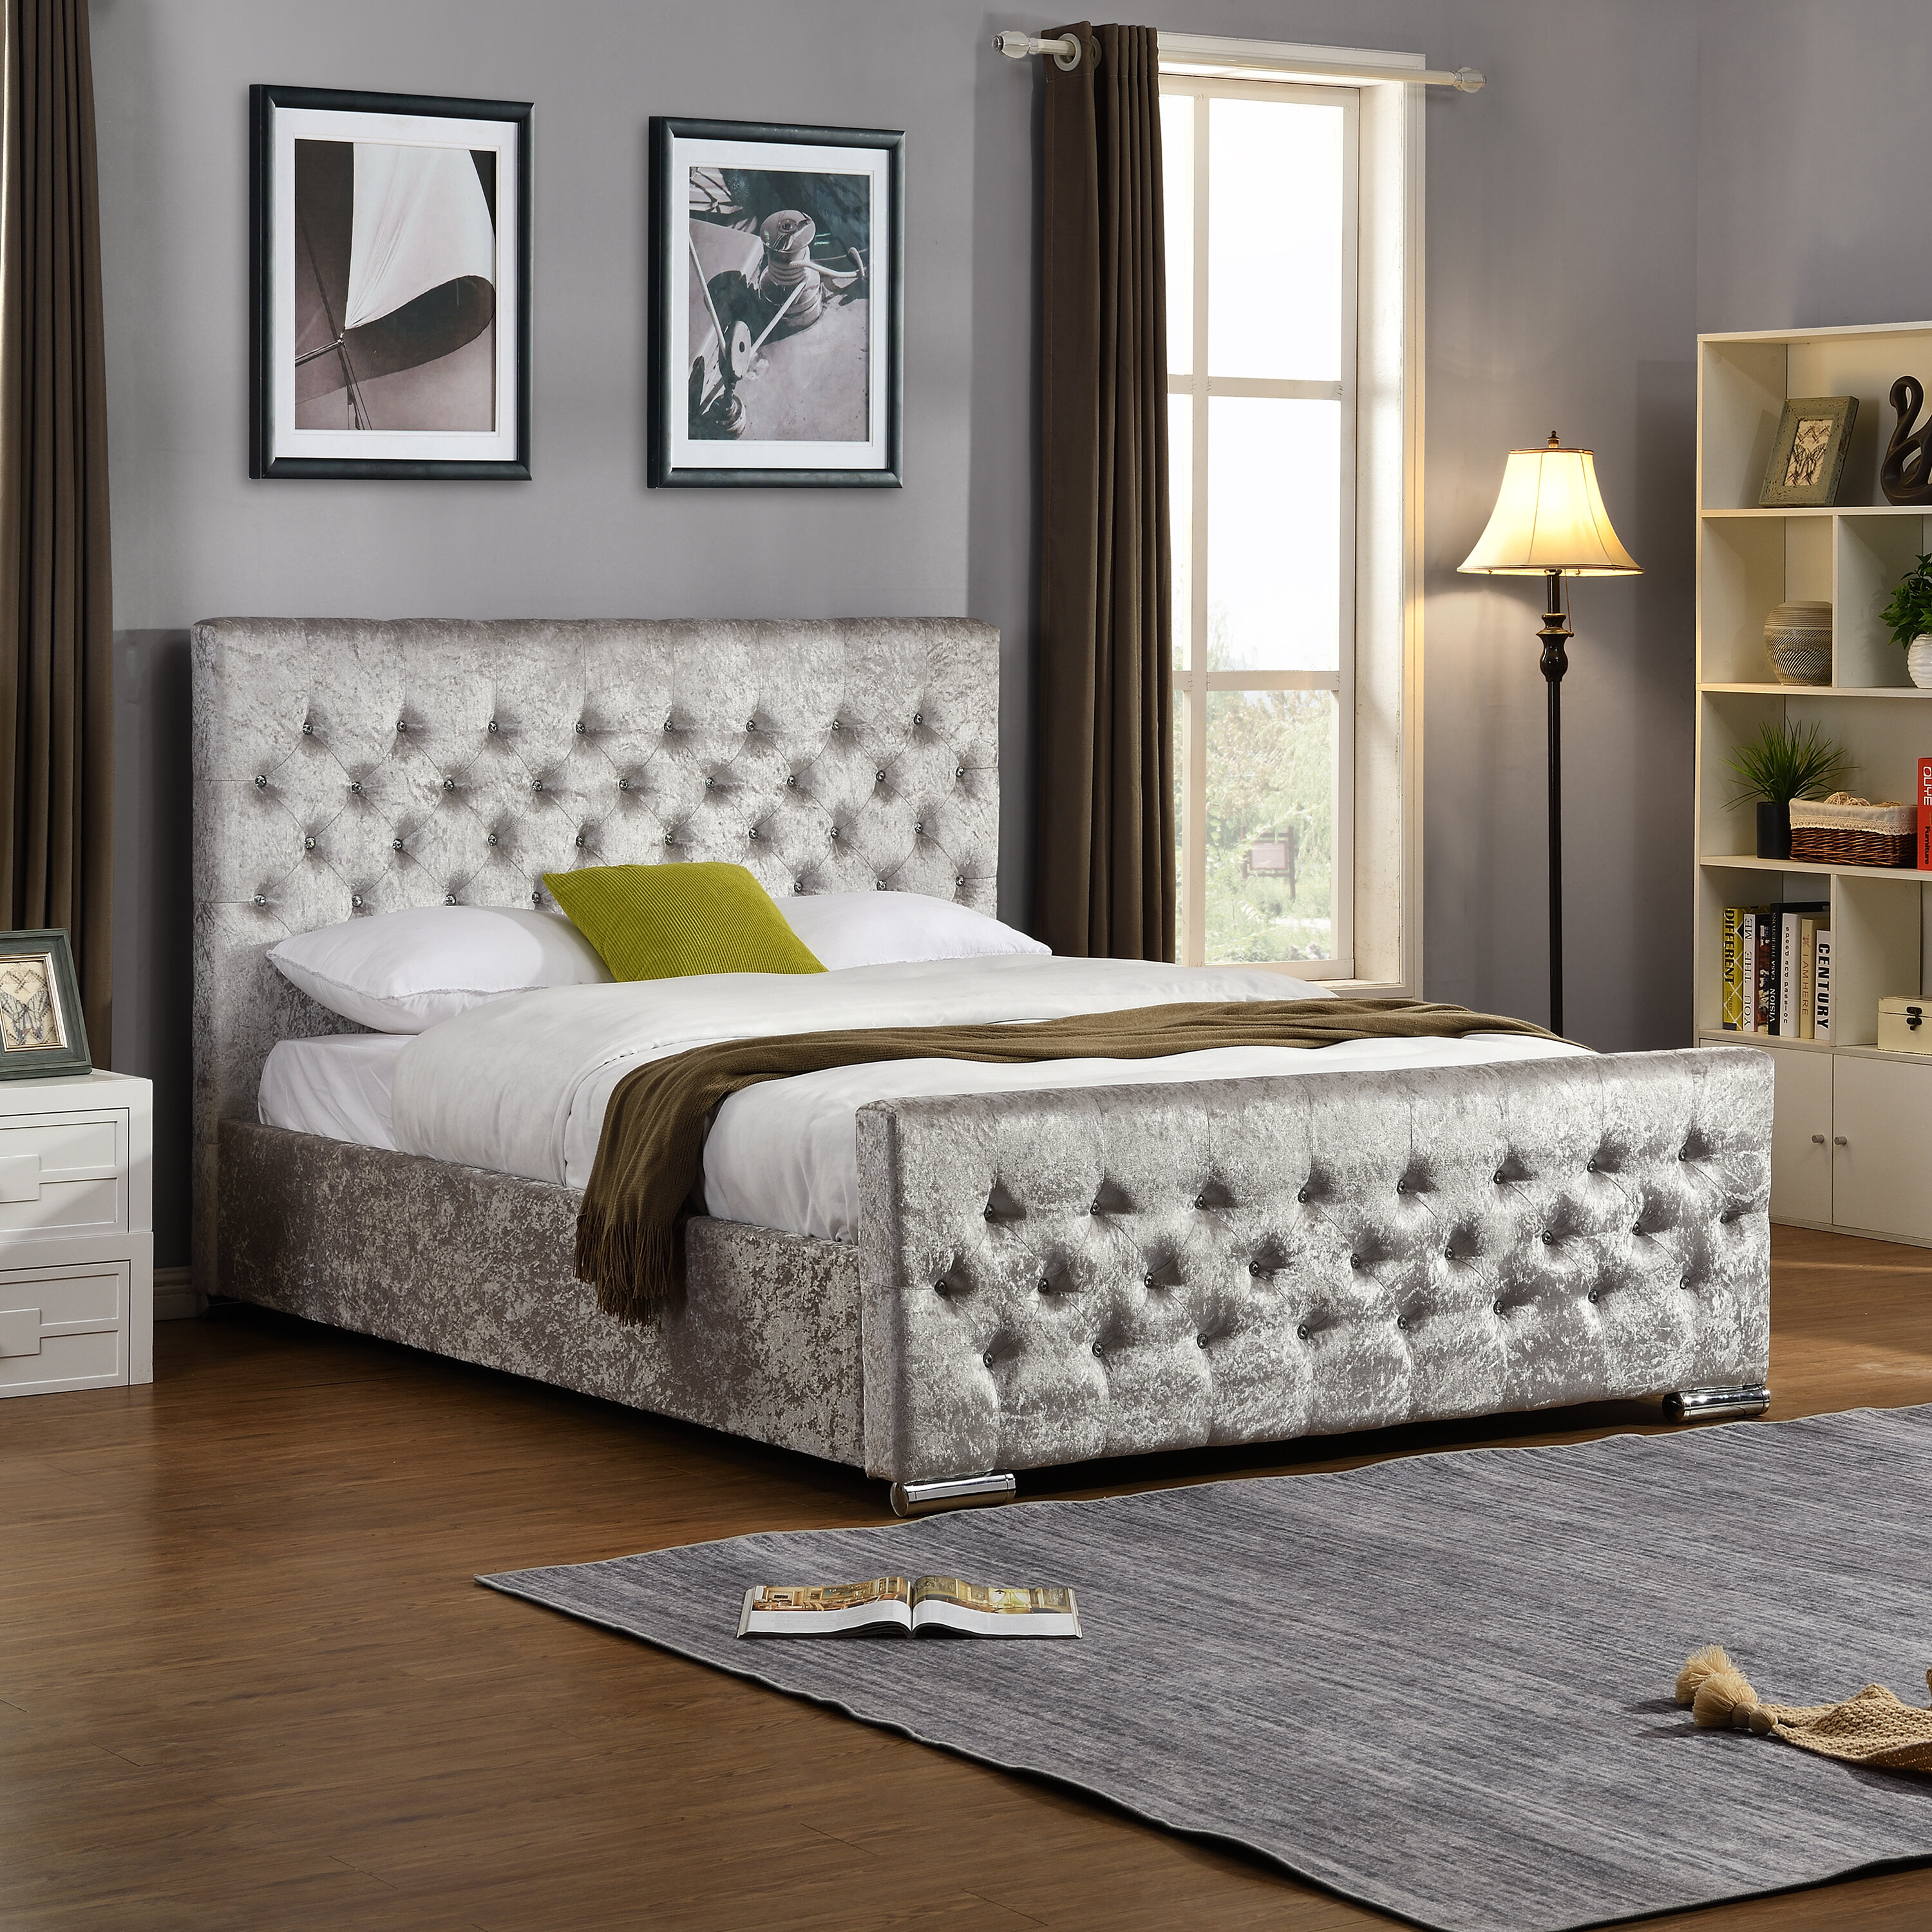 Picture of: Canora Grey Hudson Small Double 4 Upholstered Bed Frame Reviews Wayfair Co Uk